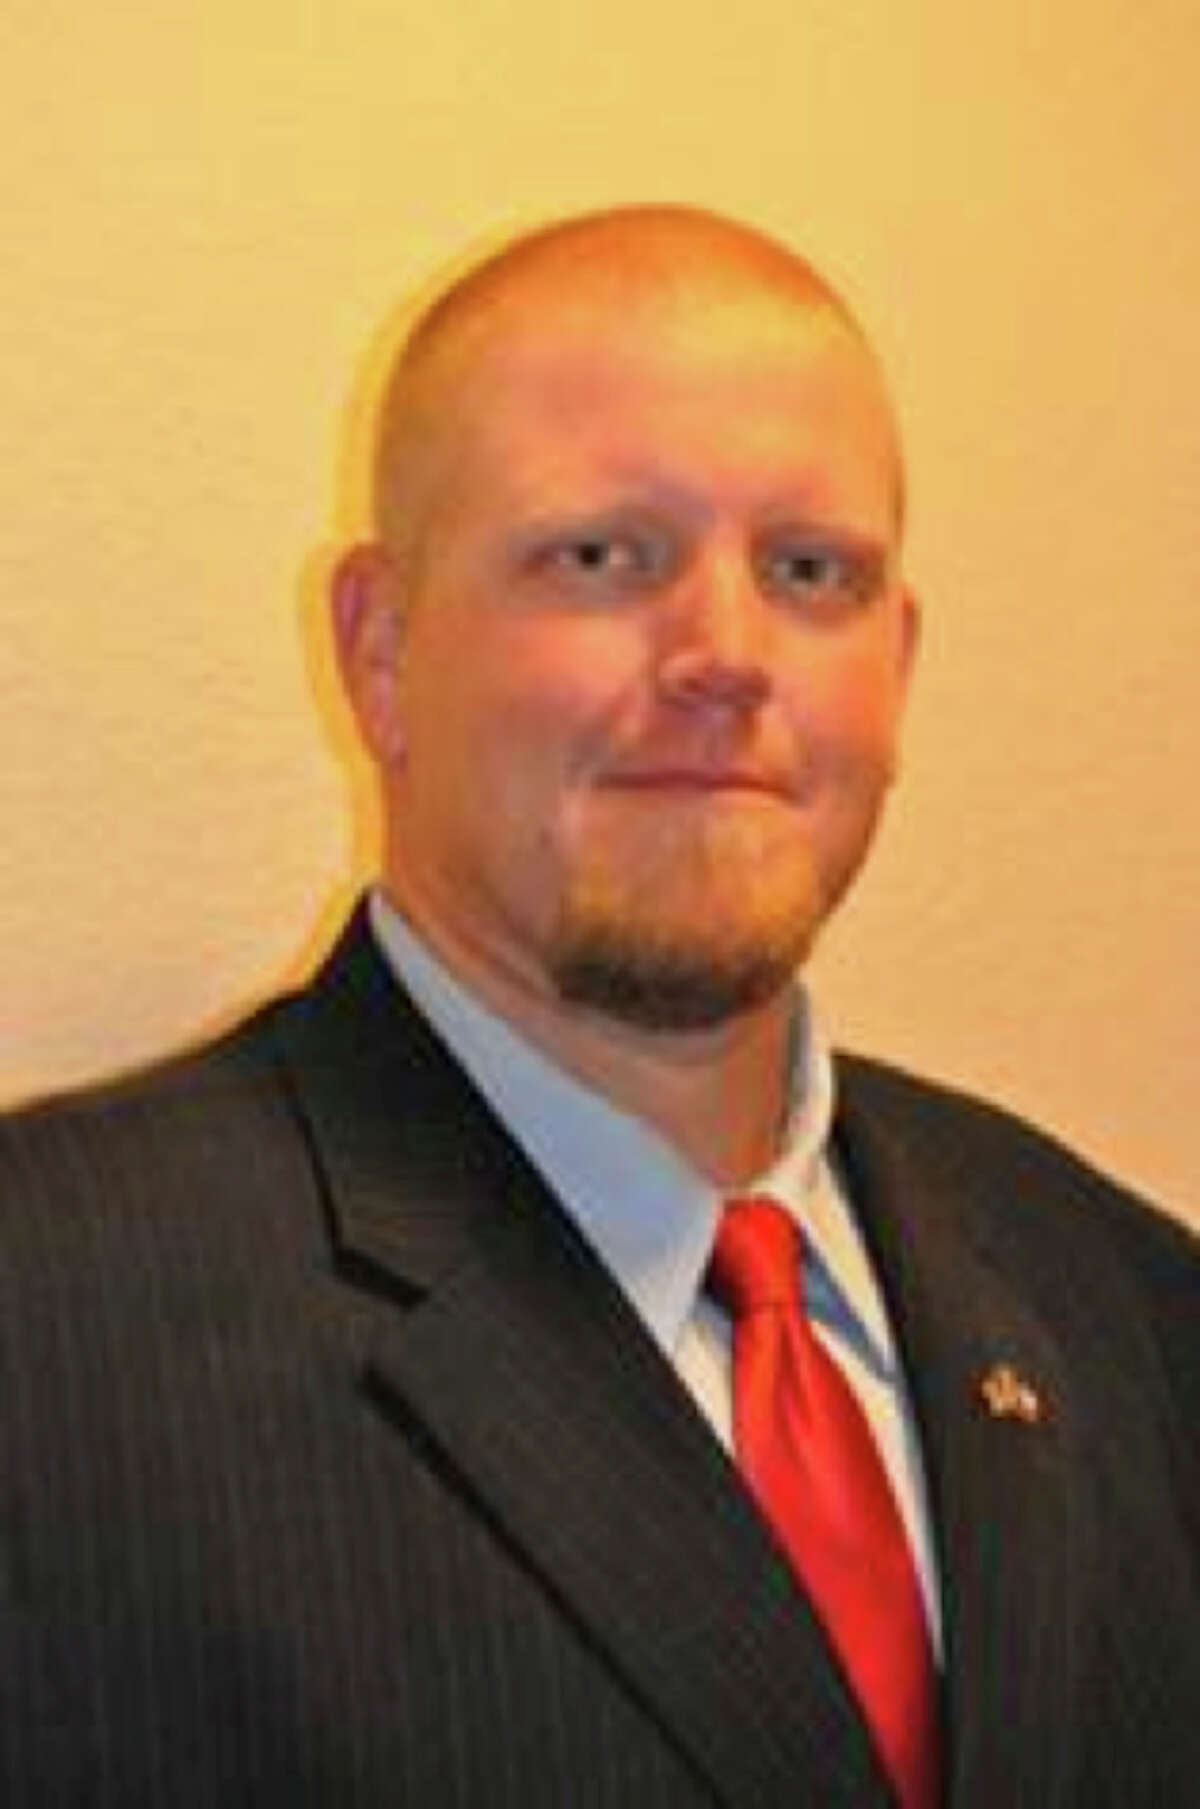 Photo of Kyle Kutscher, Commissioner Precinct #2 Guadalupe County